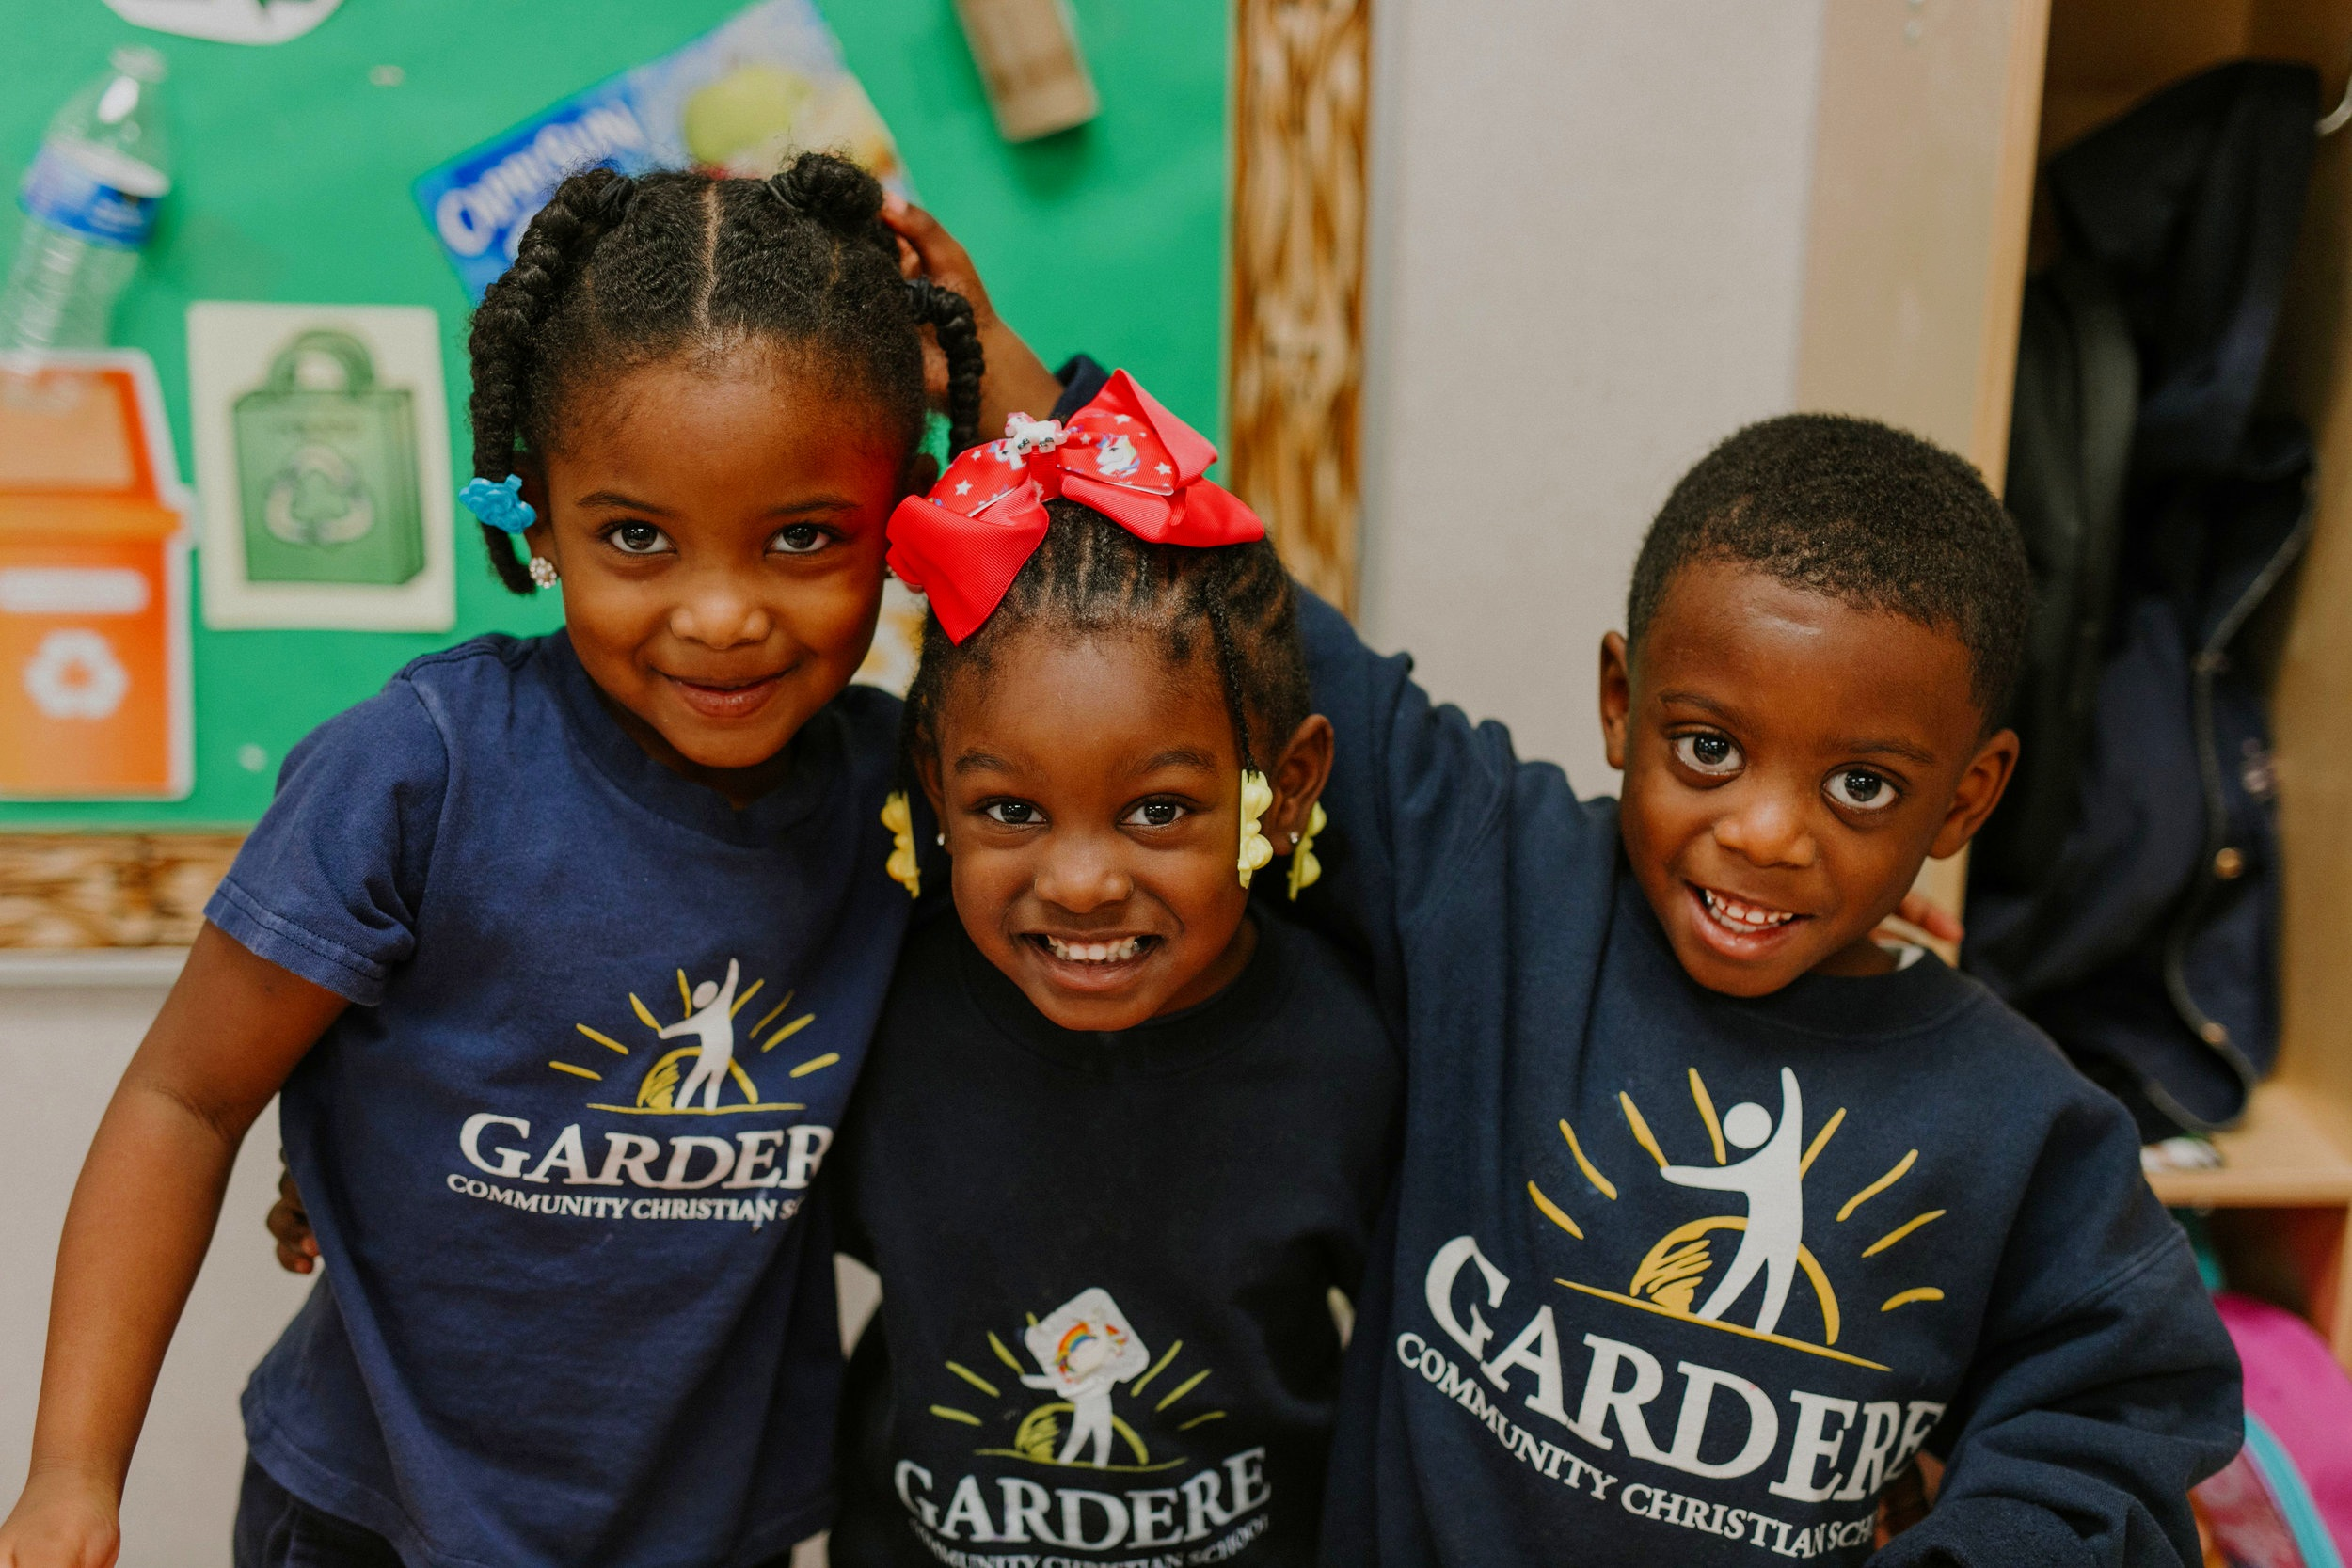 OUR GOAL - The goal of Gardere Community Christian School is to make a high quality, Christian education available to every child and family in the Gardere area, regardless of their financial circumstances.